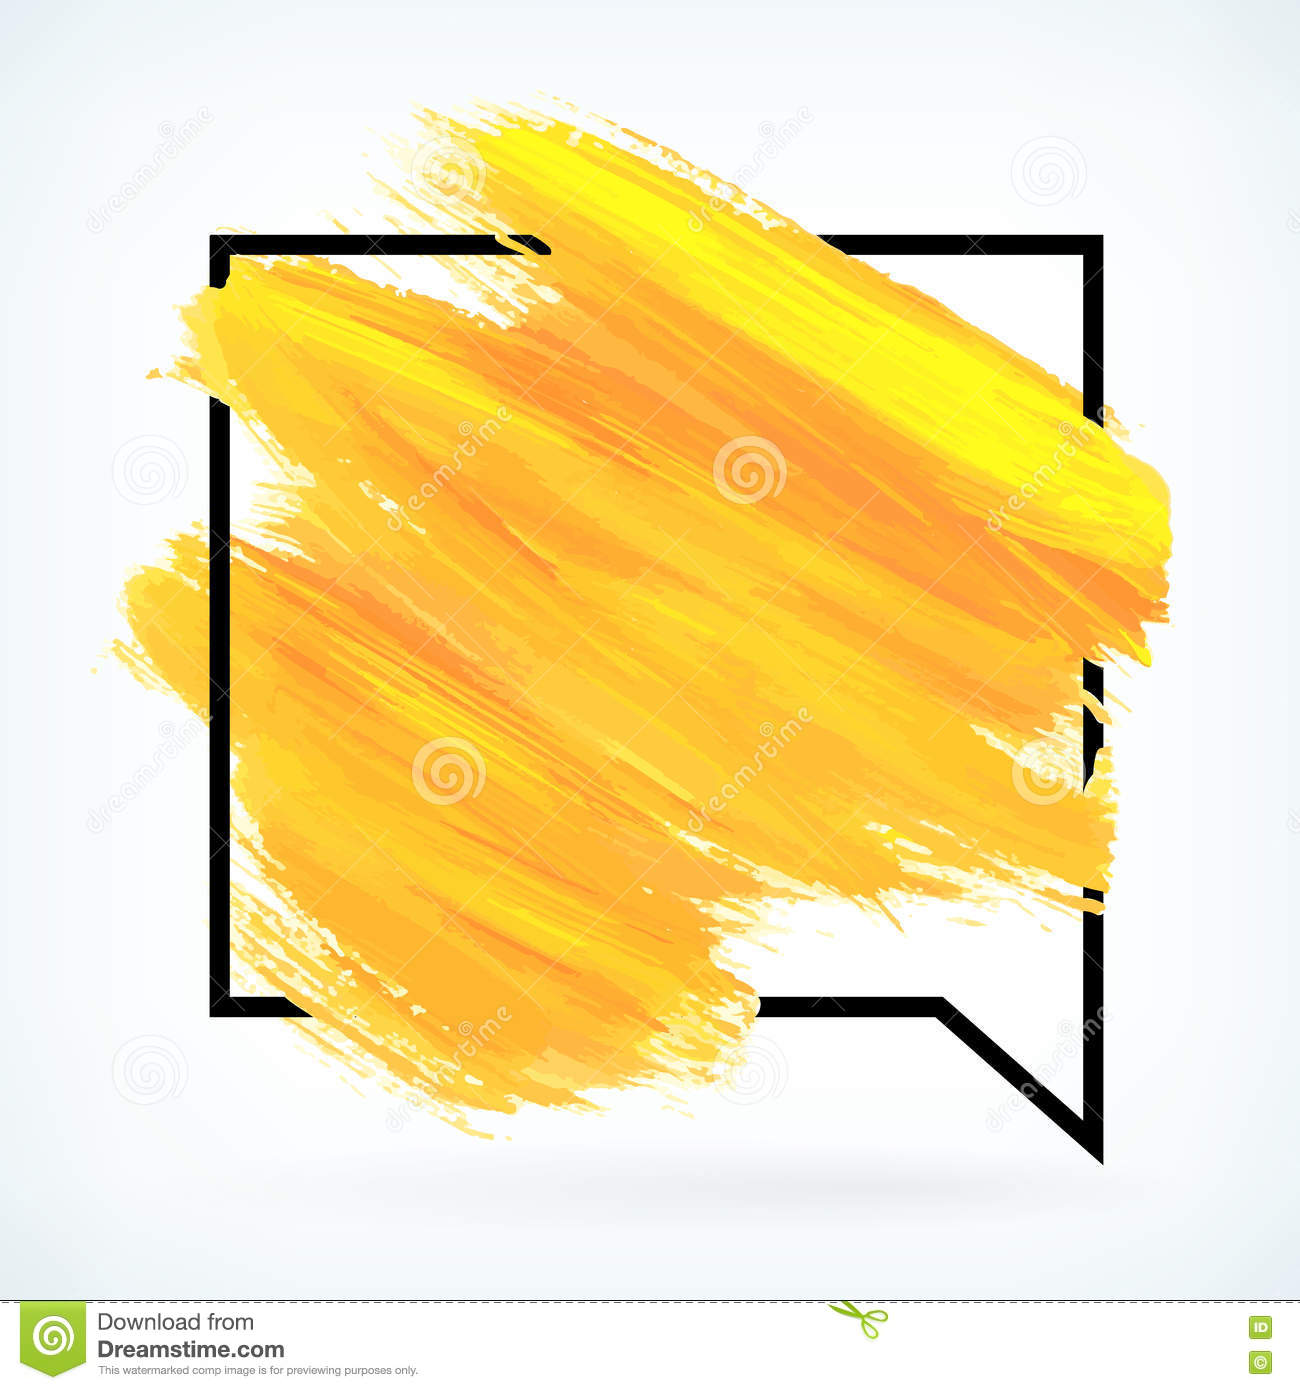 yellow paint artistic dry brush stroke vector background stock rh dreamstime com paint stroke texture vector red paint stroke vector